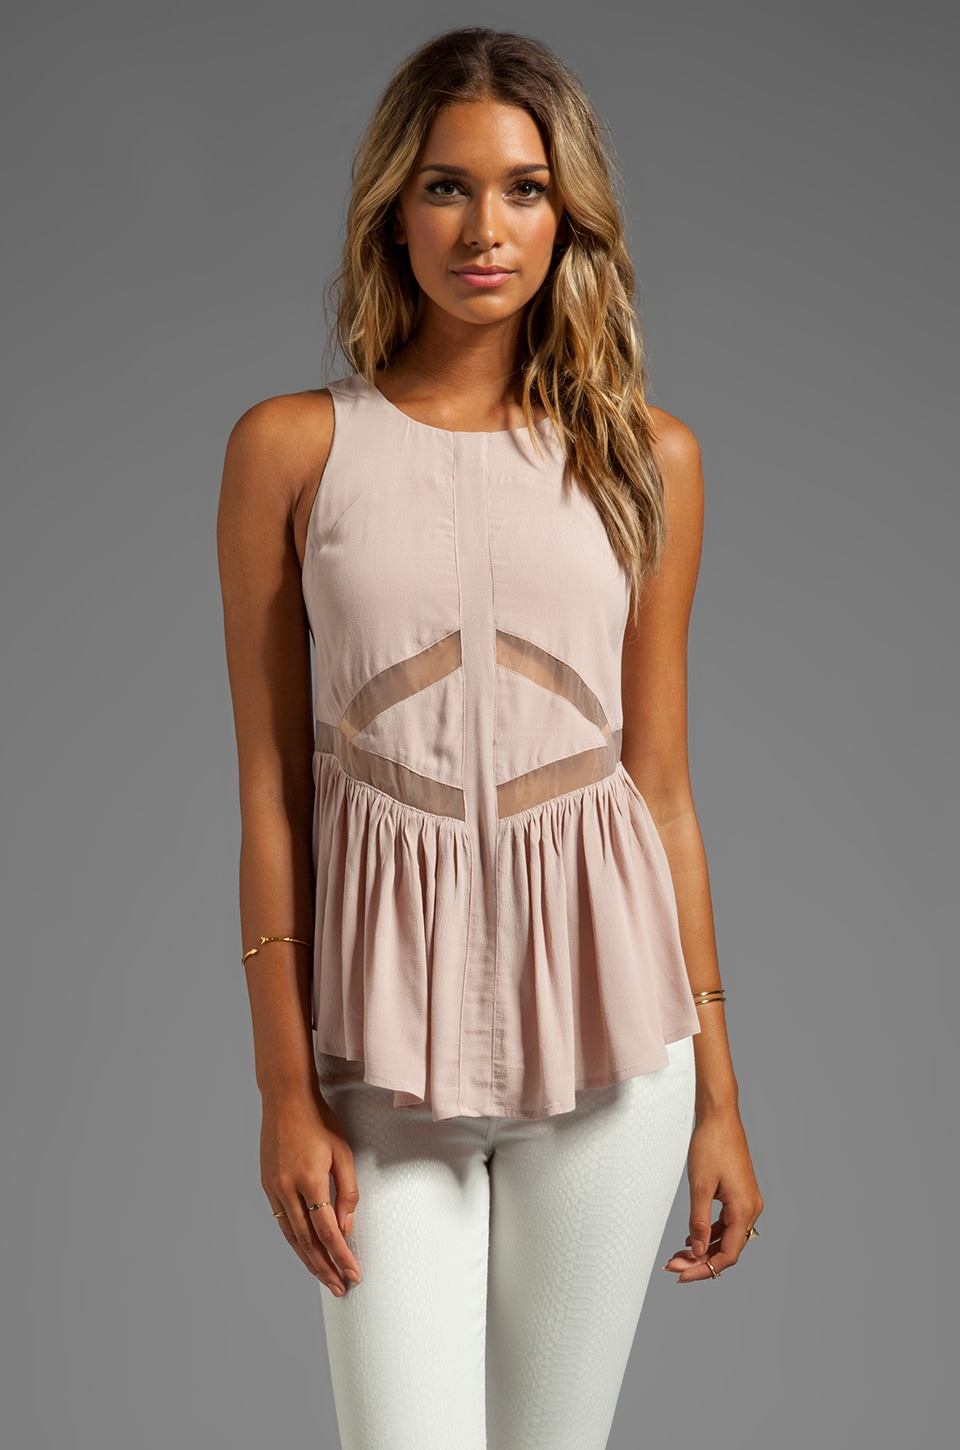 Finders Keepers Bright Side Top in Shell/Nude